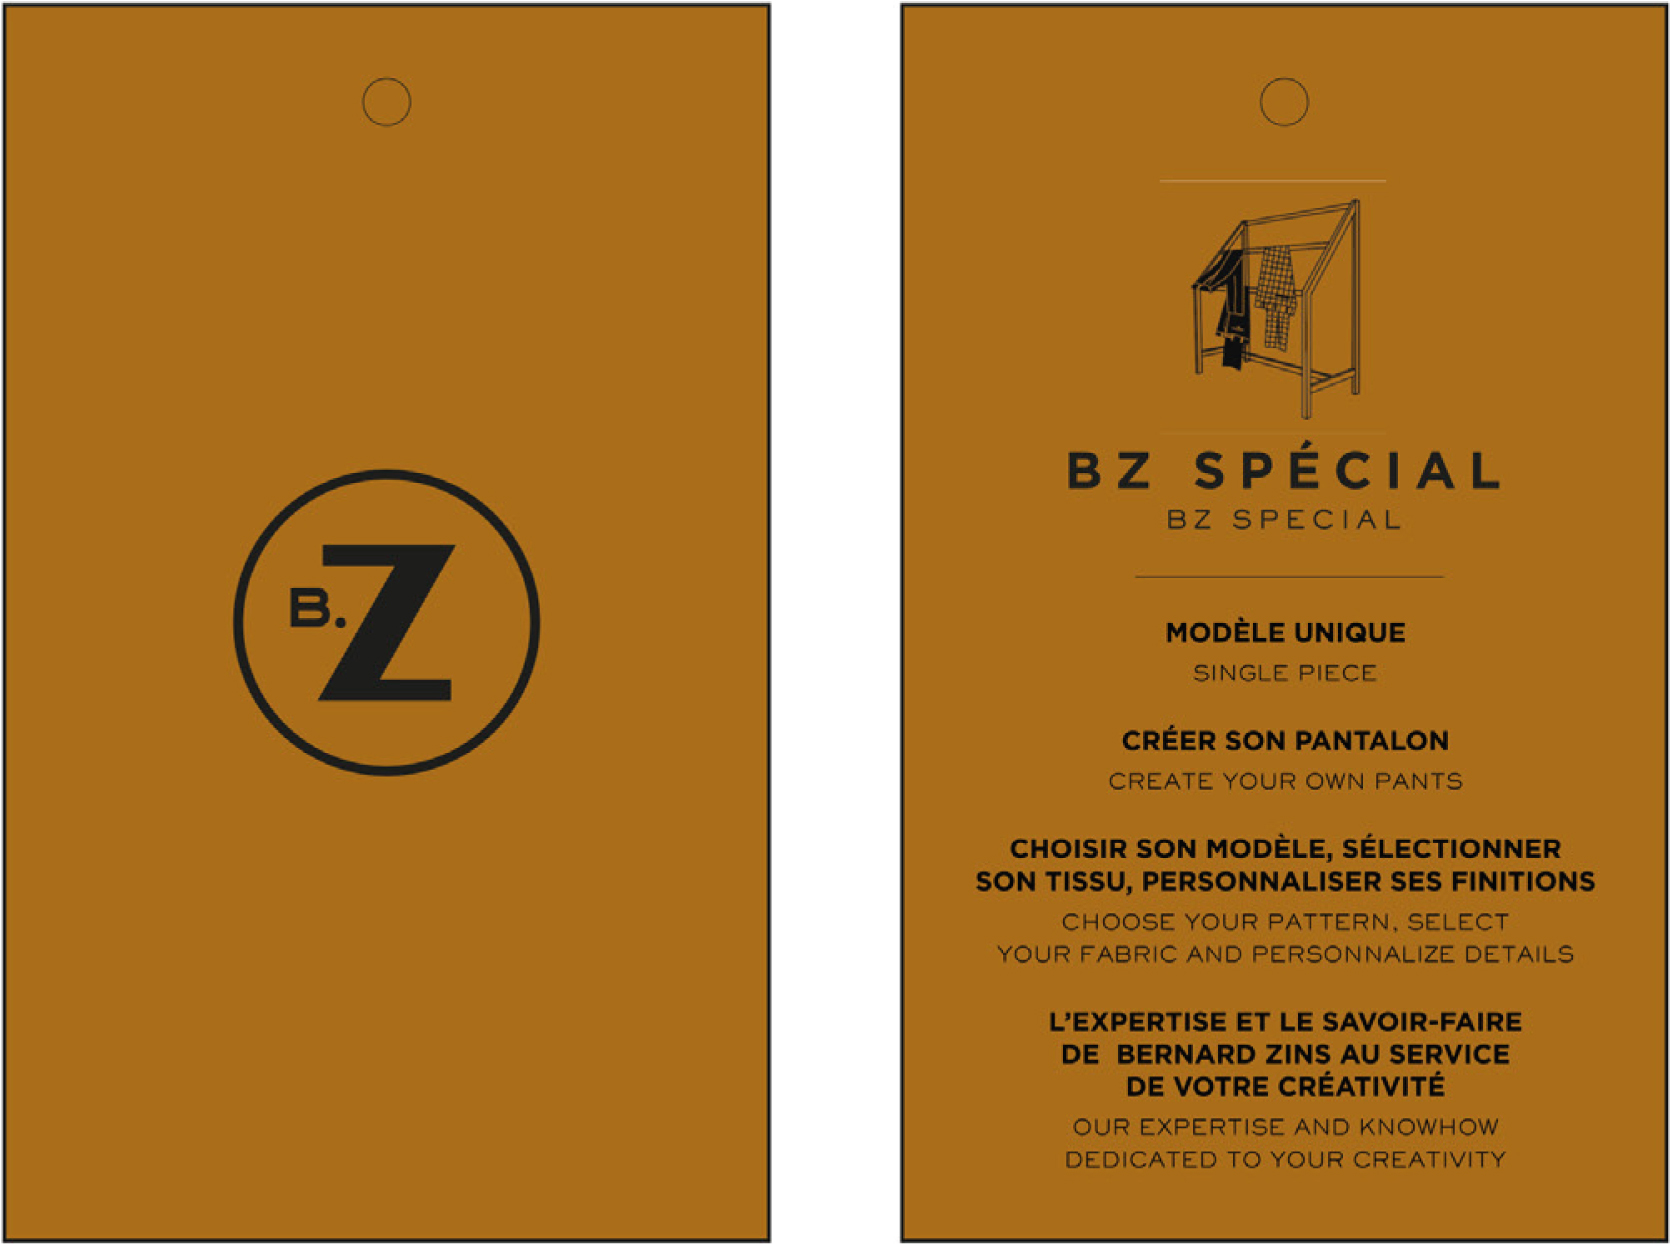 Maison Zins offers you a unique trousers made to order service